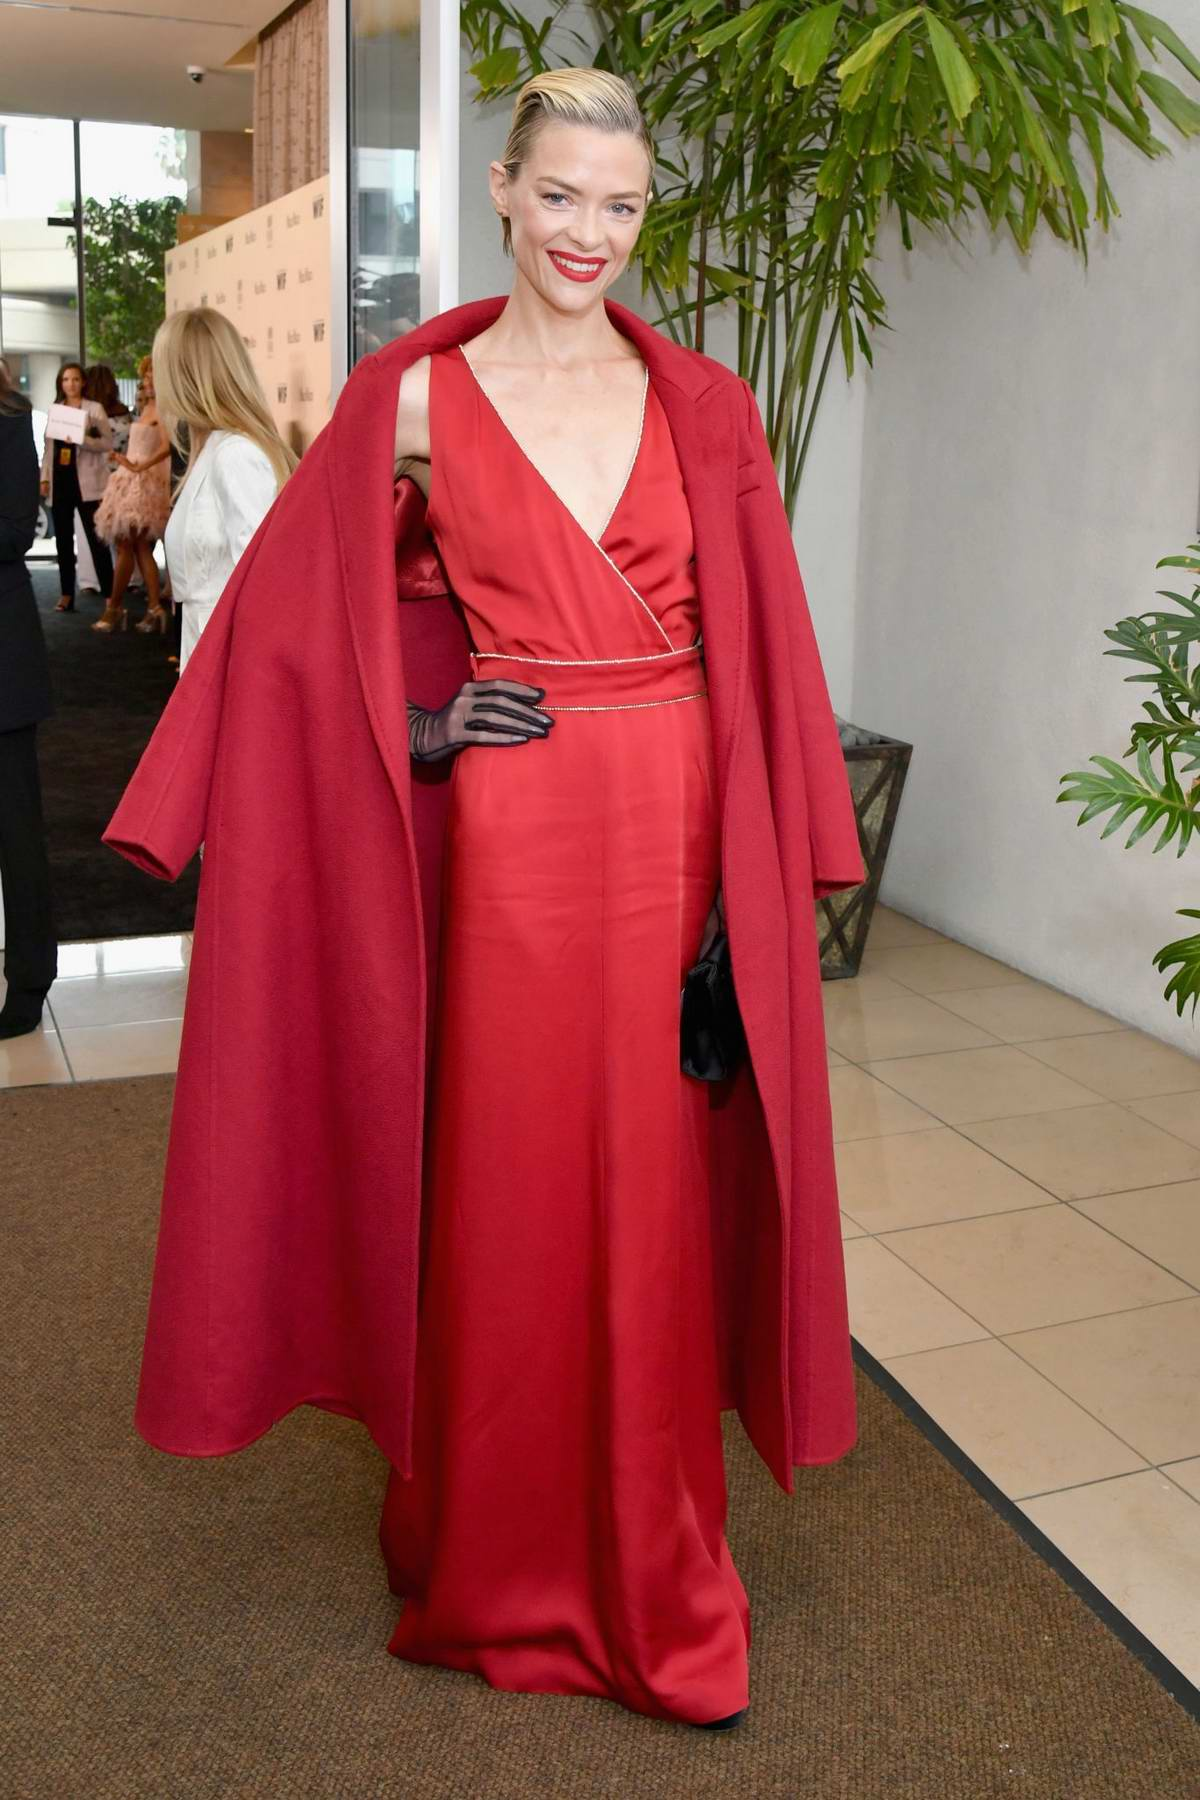 Jaime King attends the Women in Film Annual Gala presented by Max Mara at The Beverly Hilton Hotel in Los Angeles